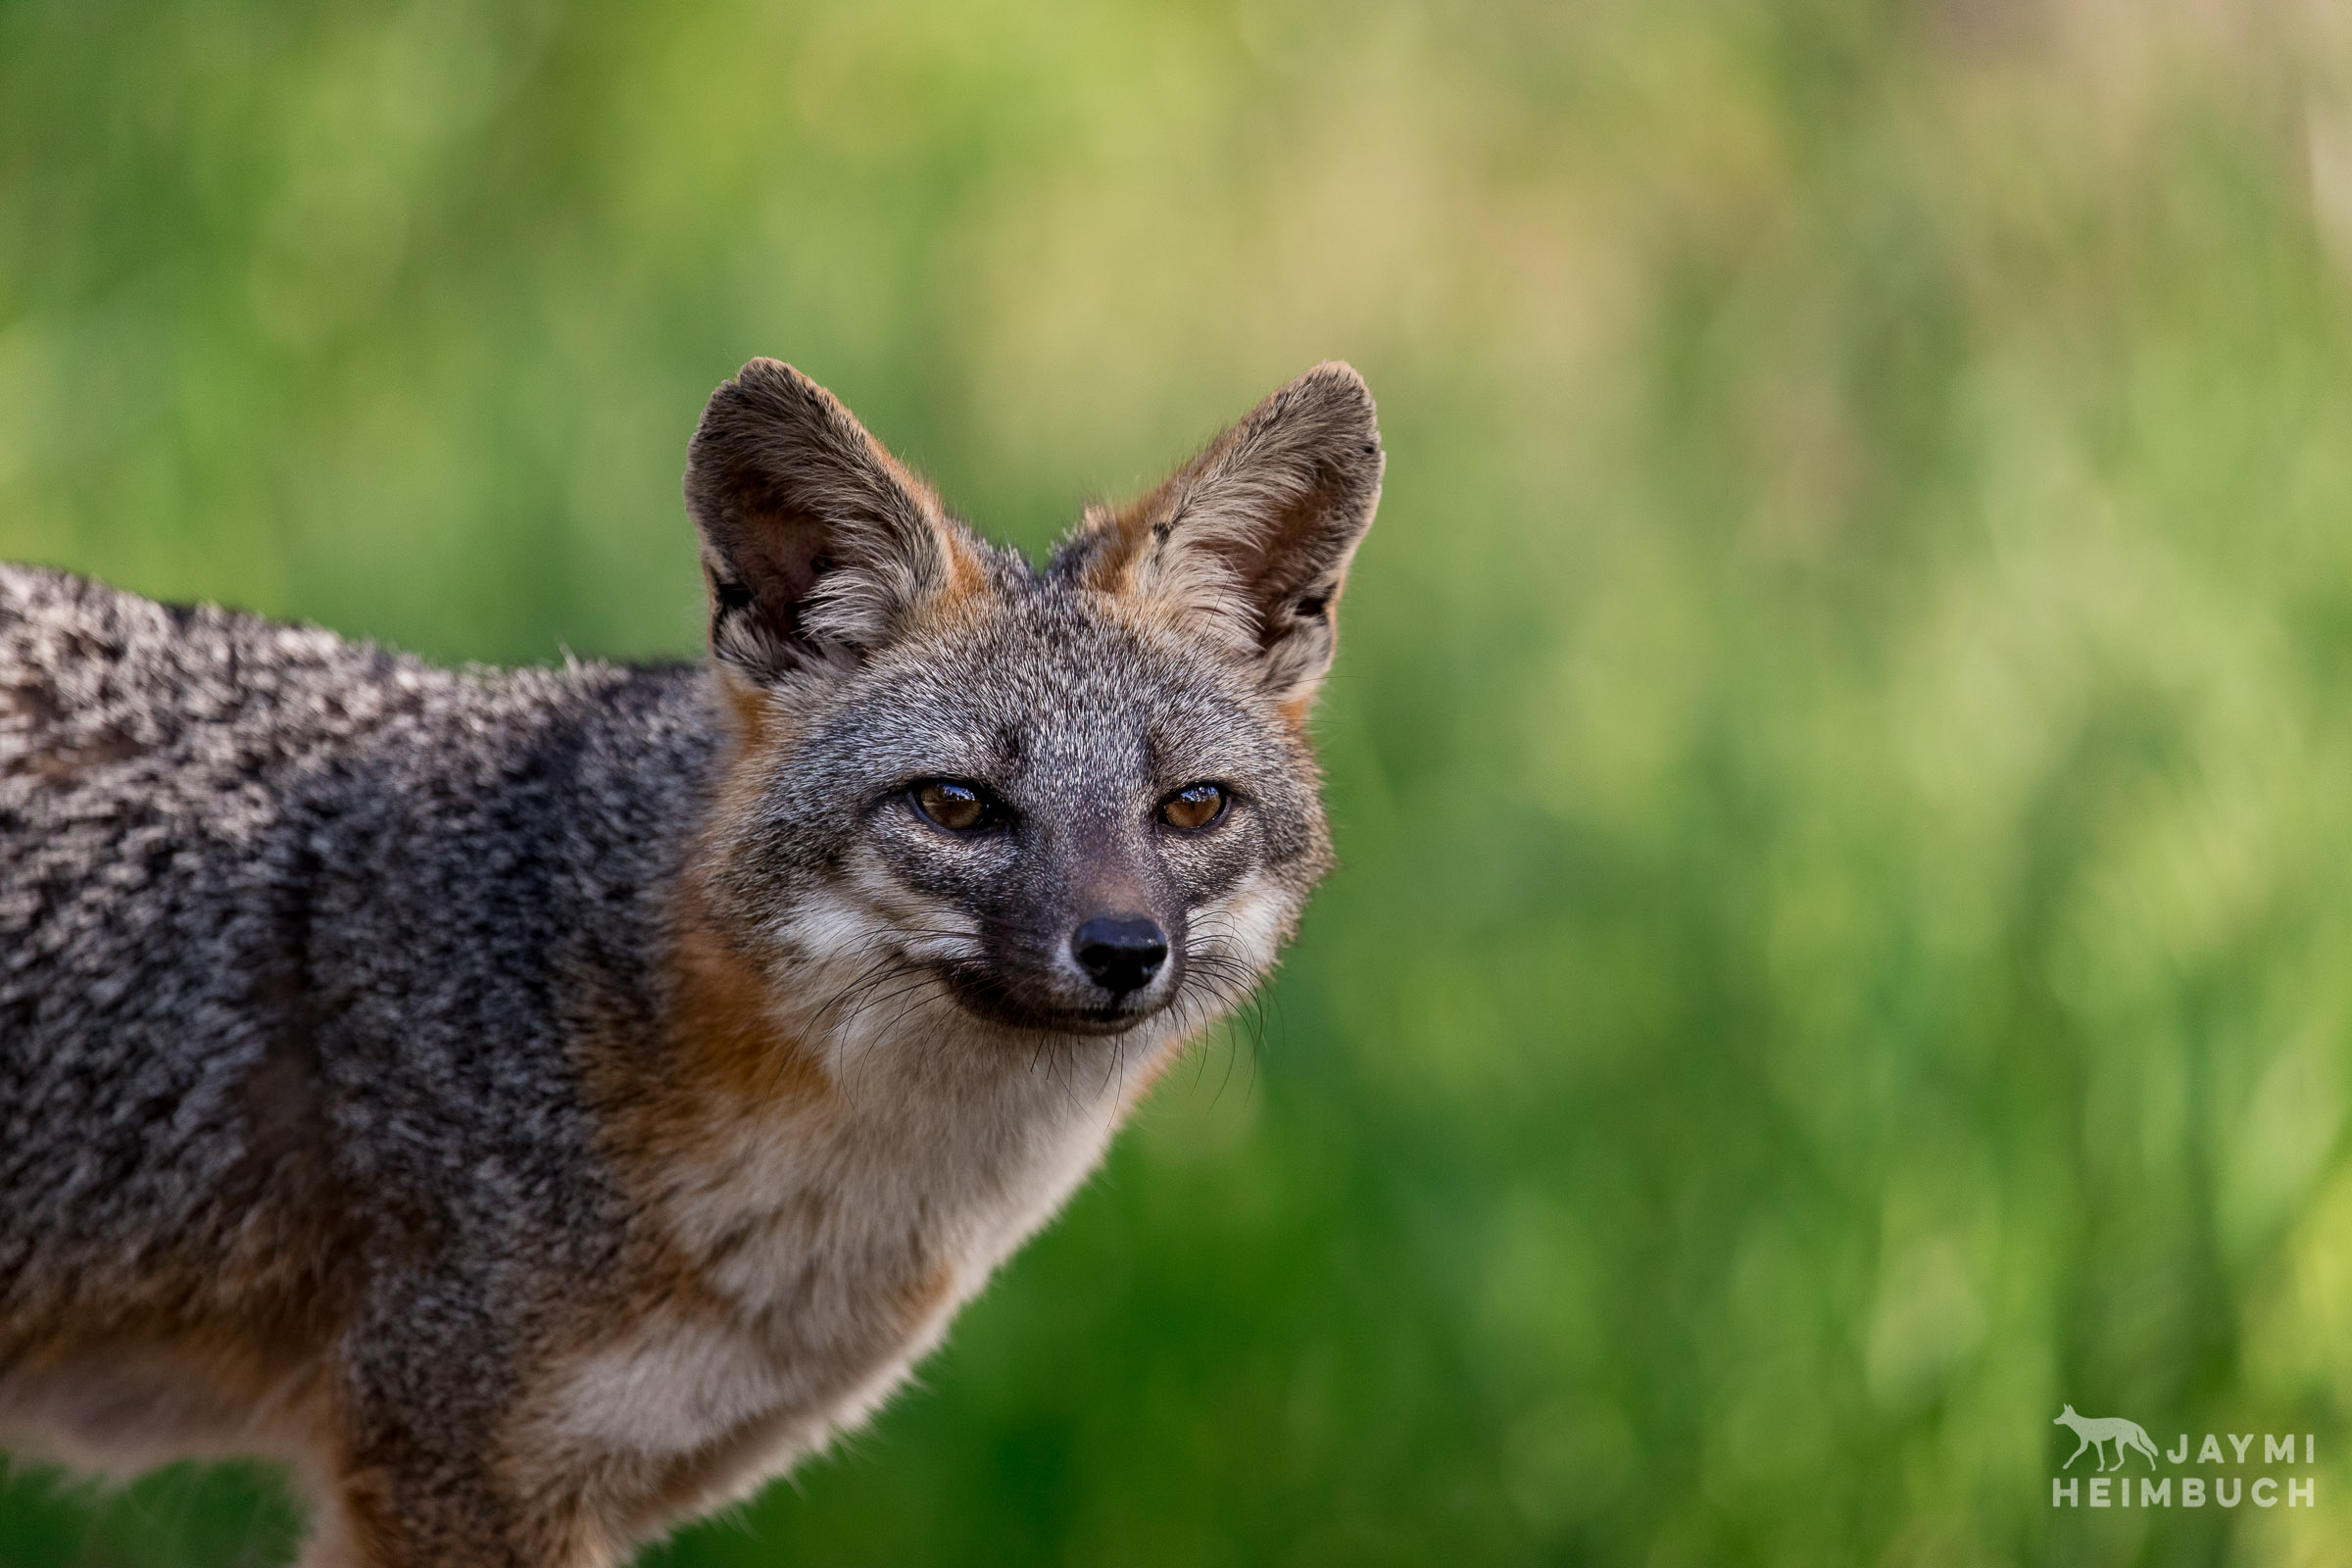 Gray fox (Urocyon cinereoargenteus) female standing against green grass, Palo Alto, California